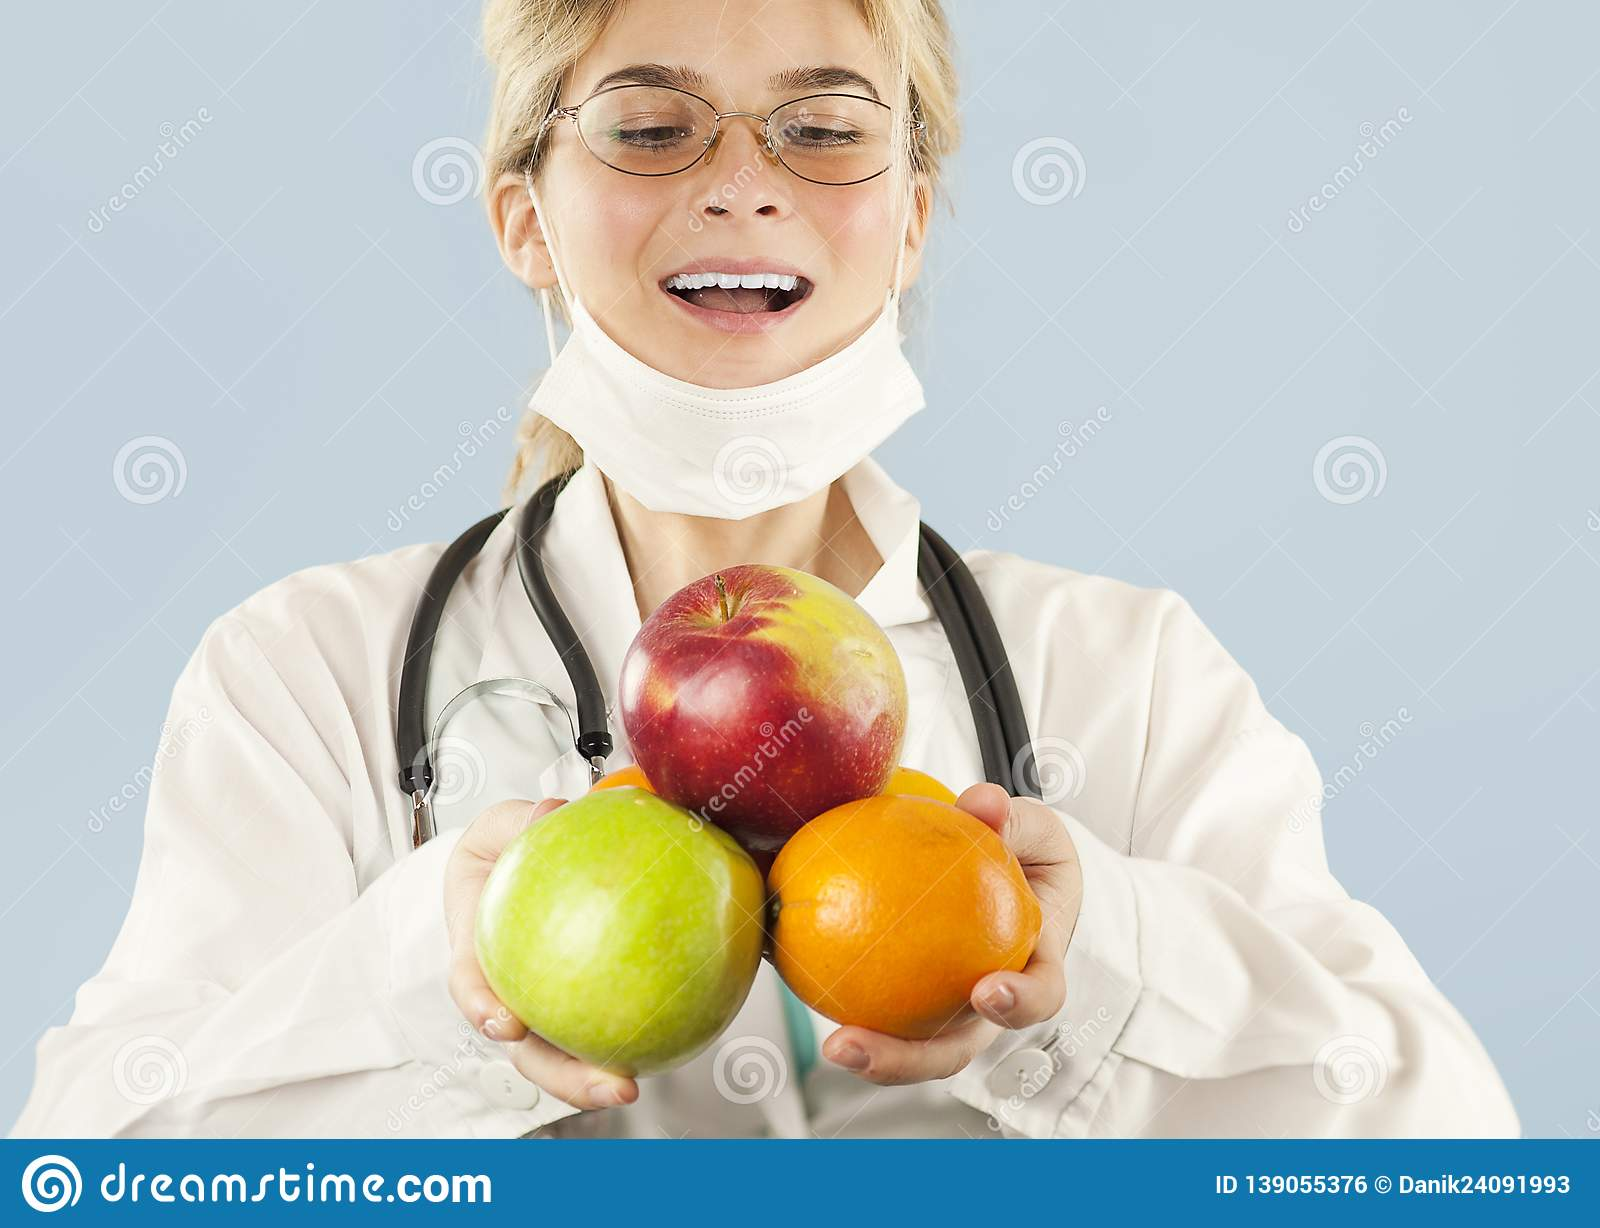 Beautiful girl doctor nutritionist with fruit in hand on blue isolated background. Healthy eating concept